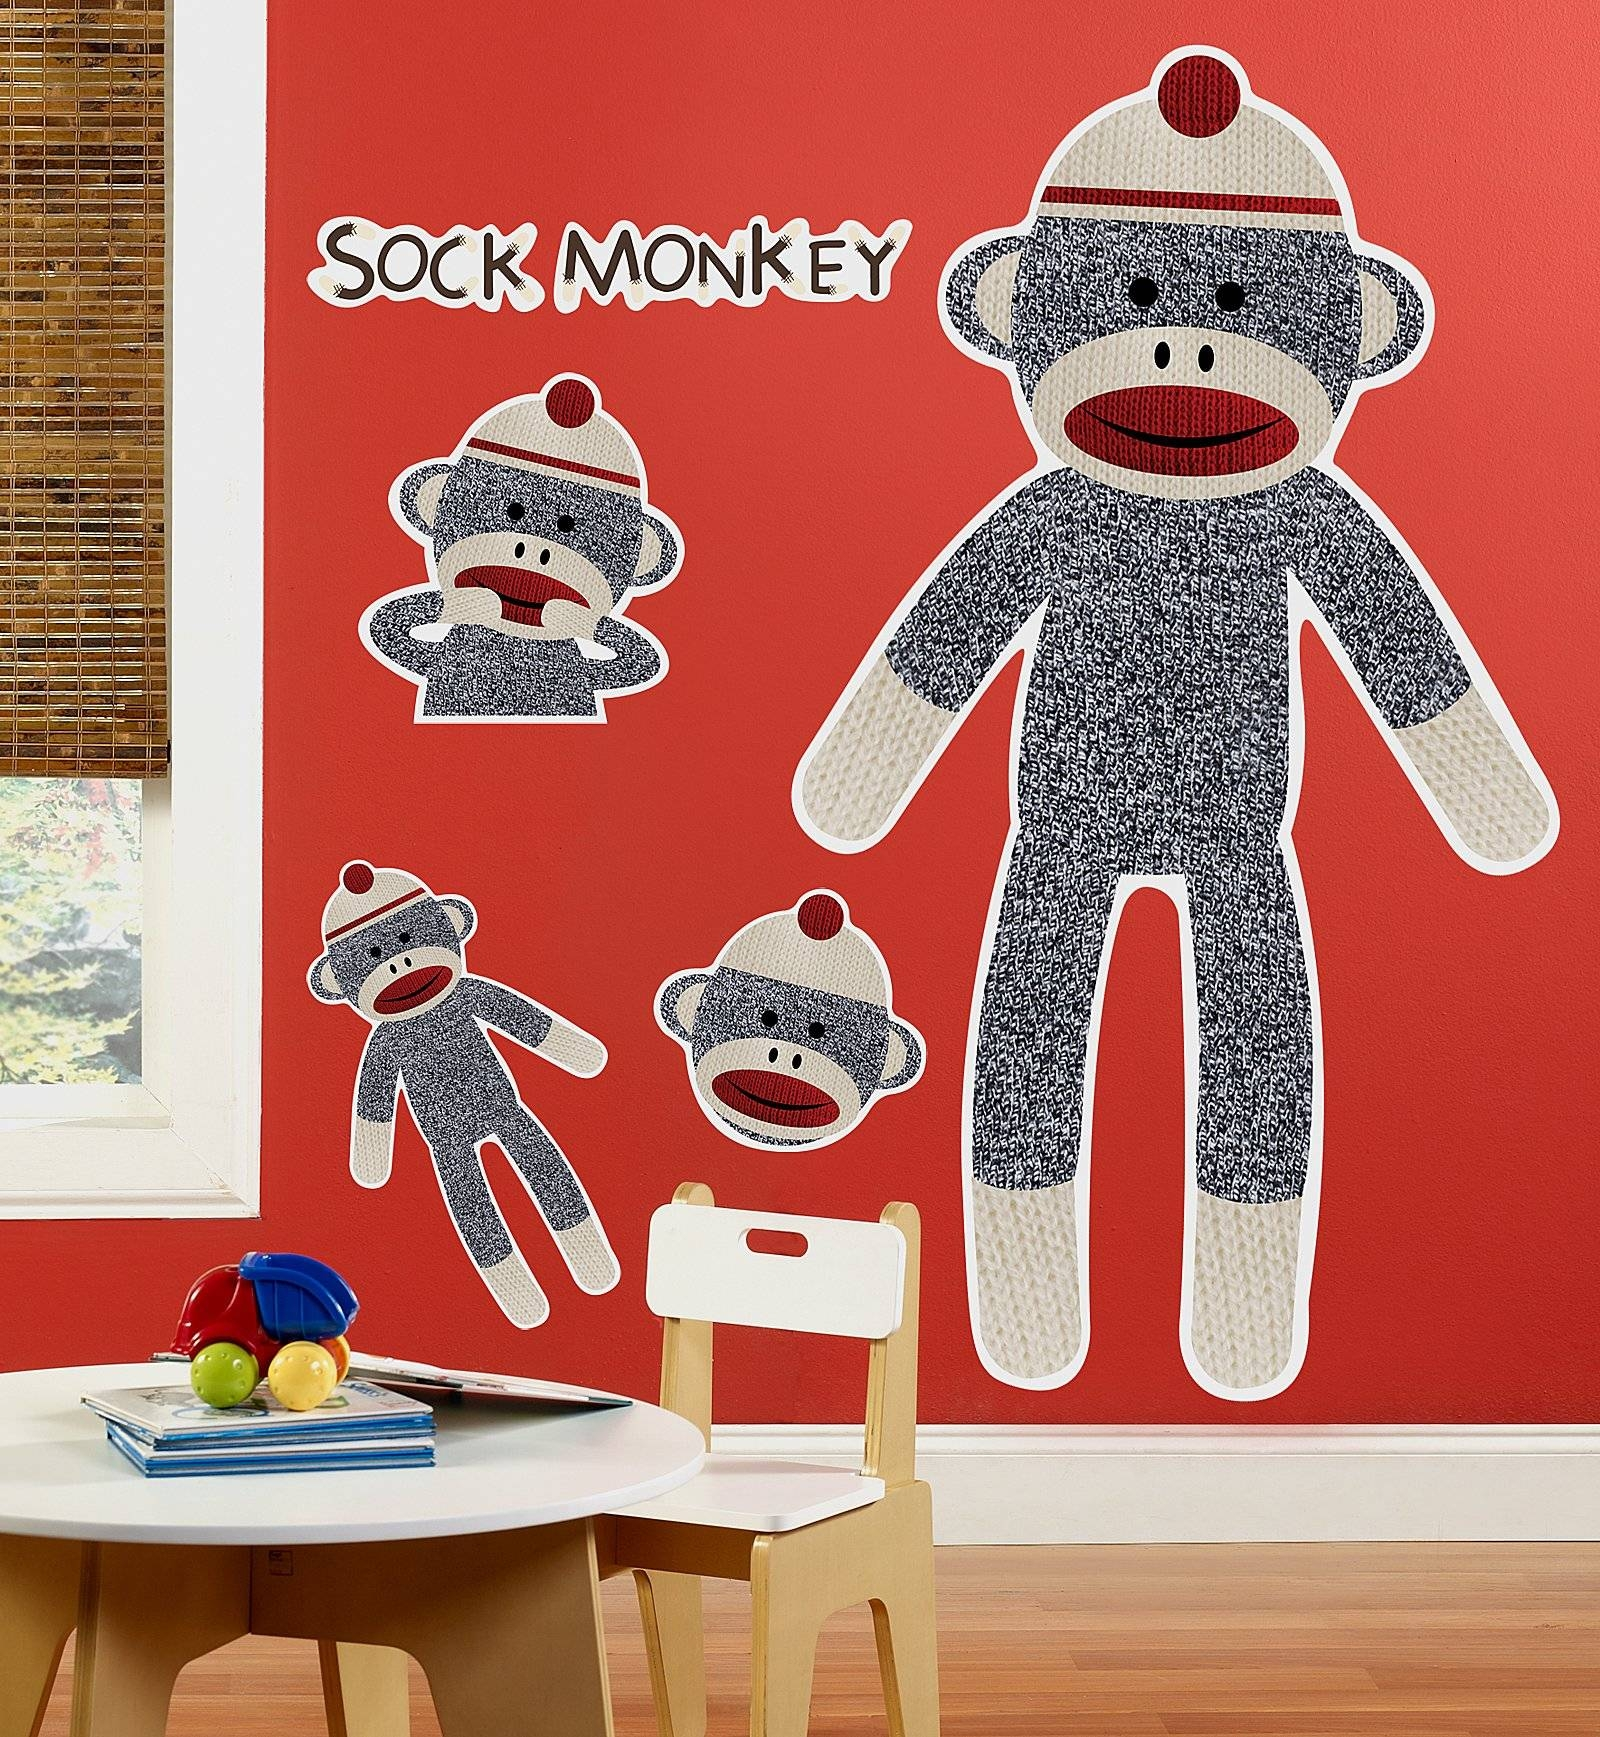 Sock Monkey Red – Personalized Vinyl Banner | Birthdayexpress Within Most Popular Sock Monkey Wall Art (View 24 of 30)